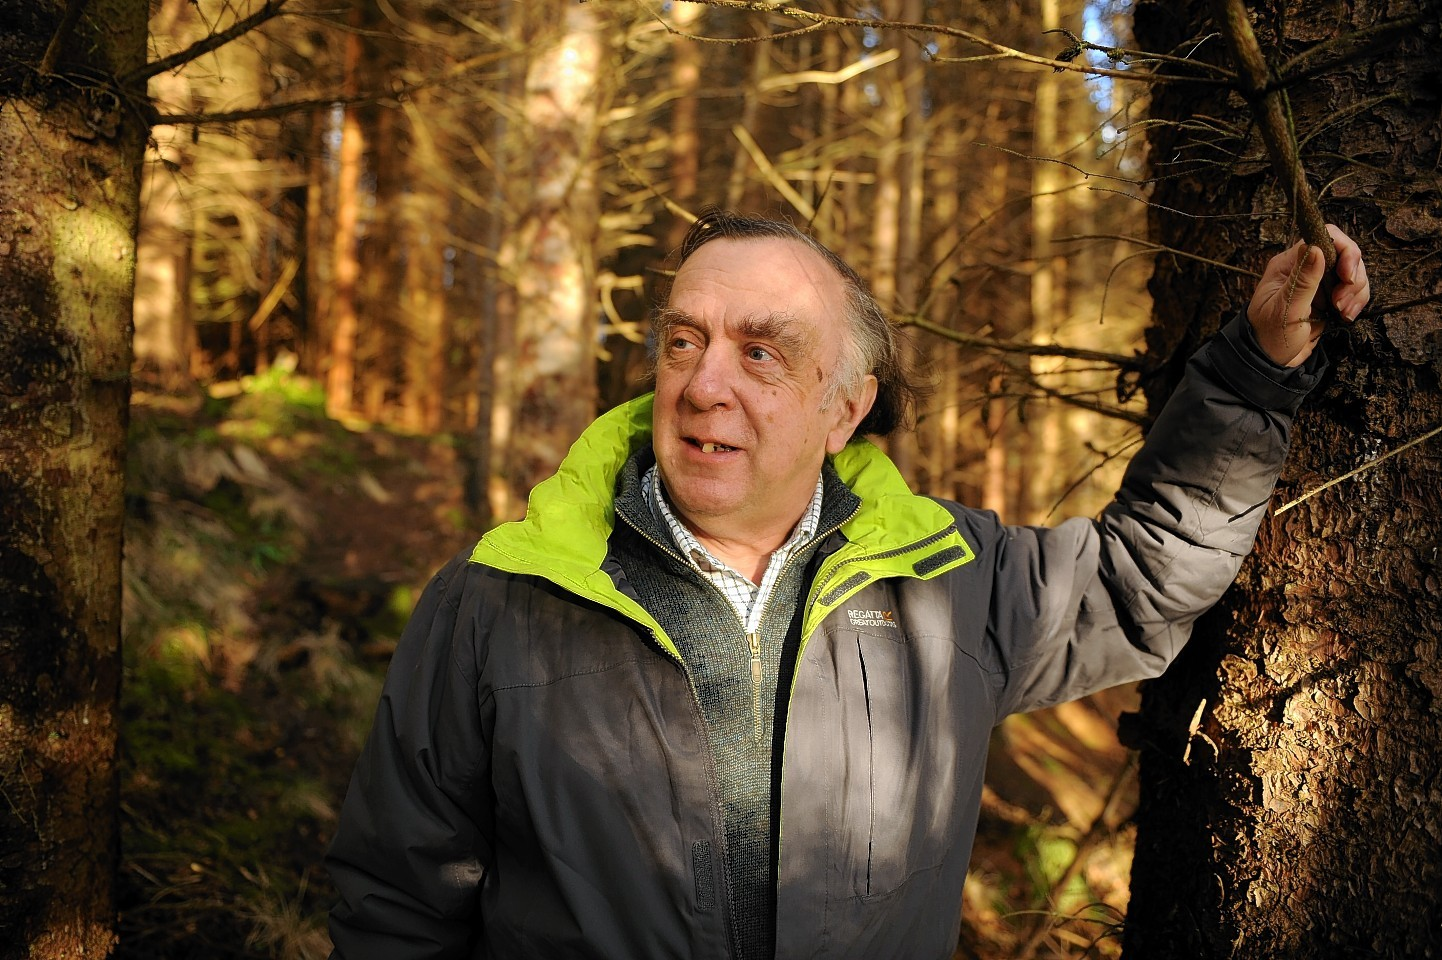 John Graham, treasurer of Aigas Community Woodland